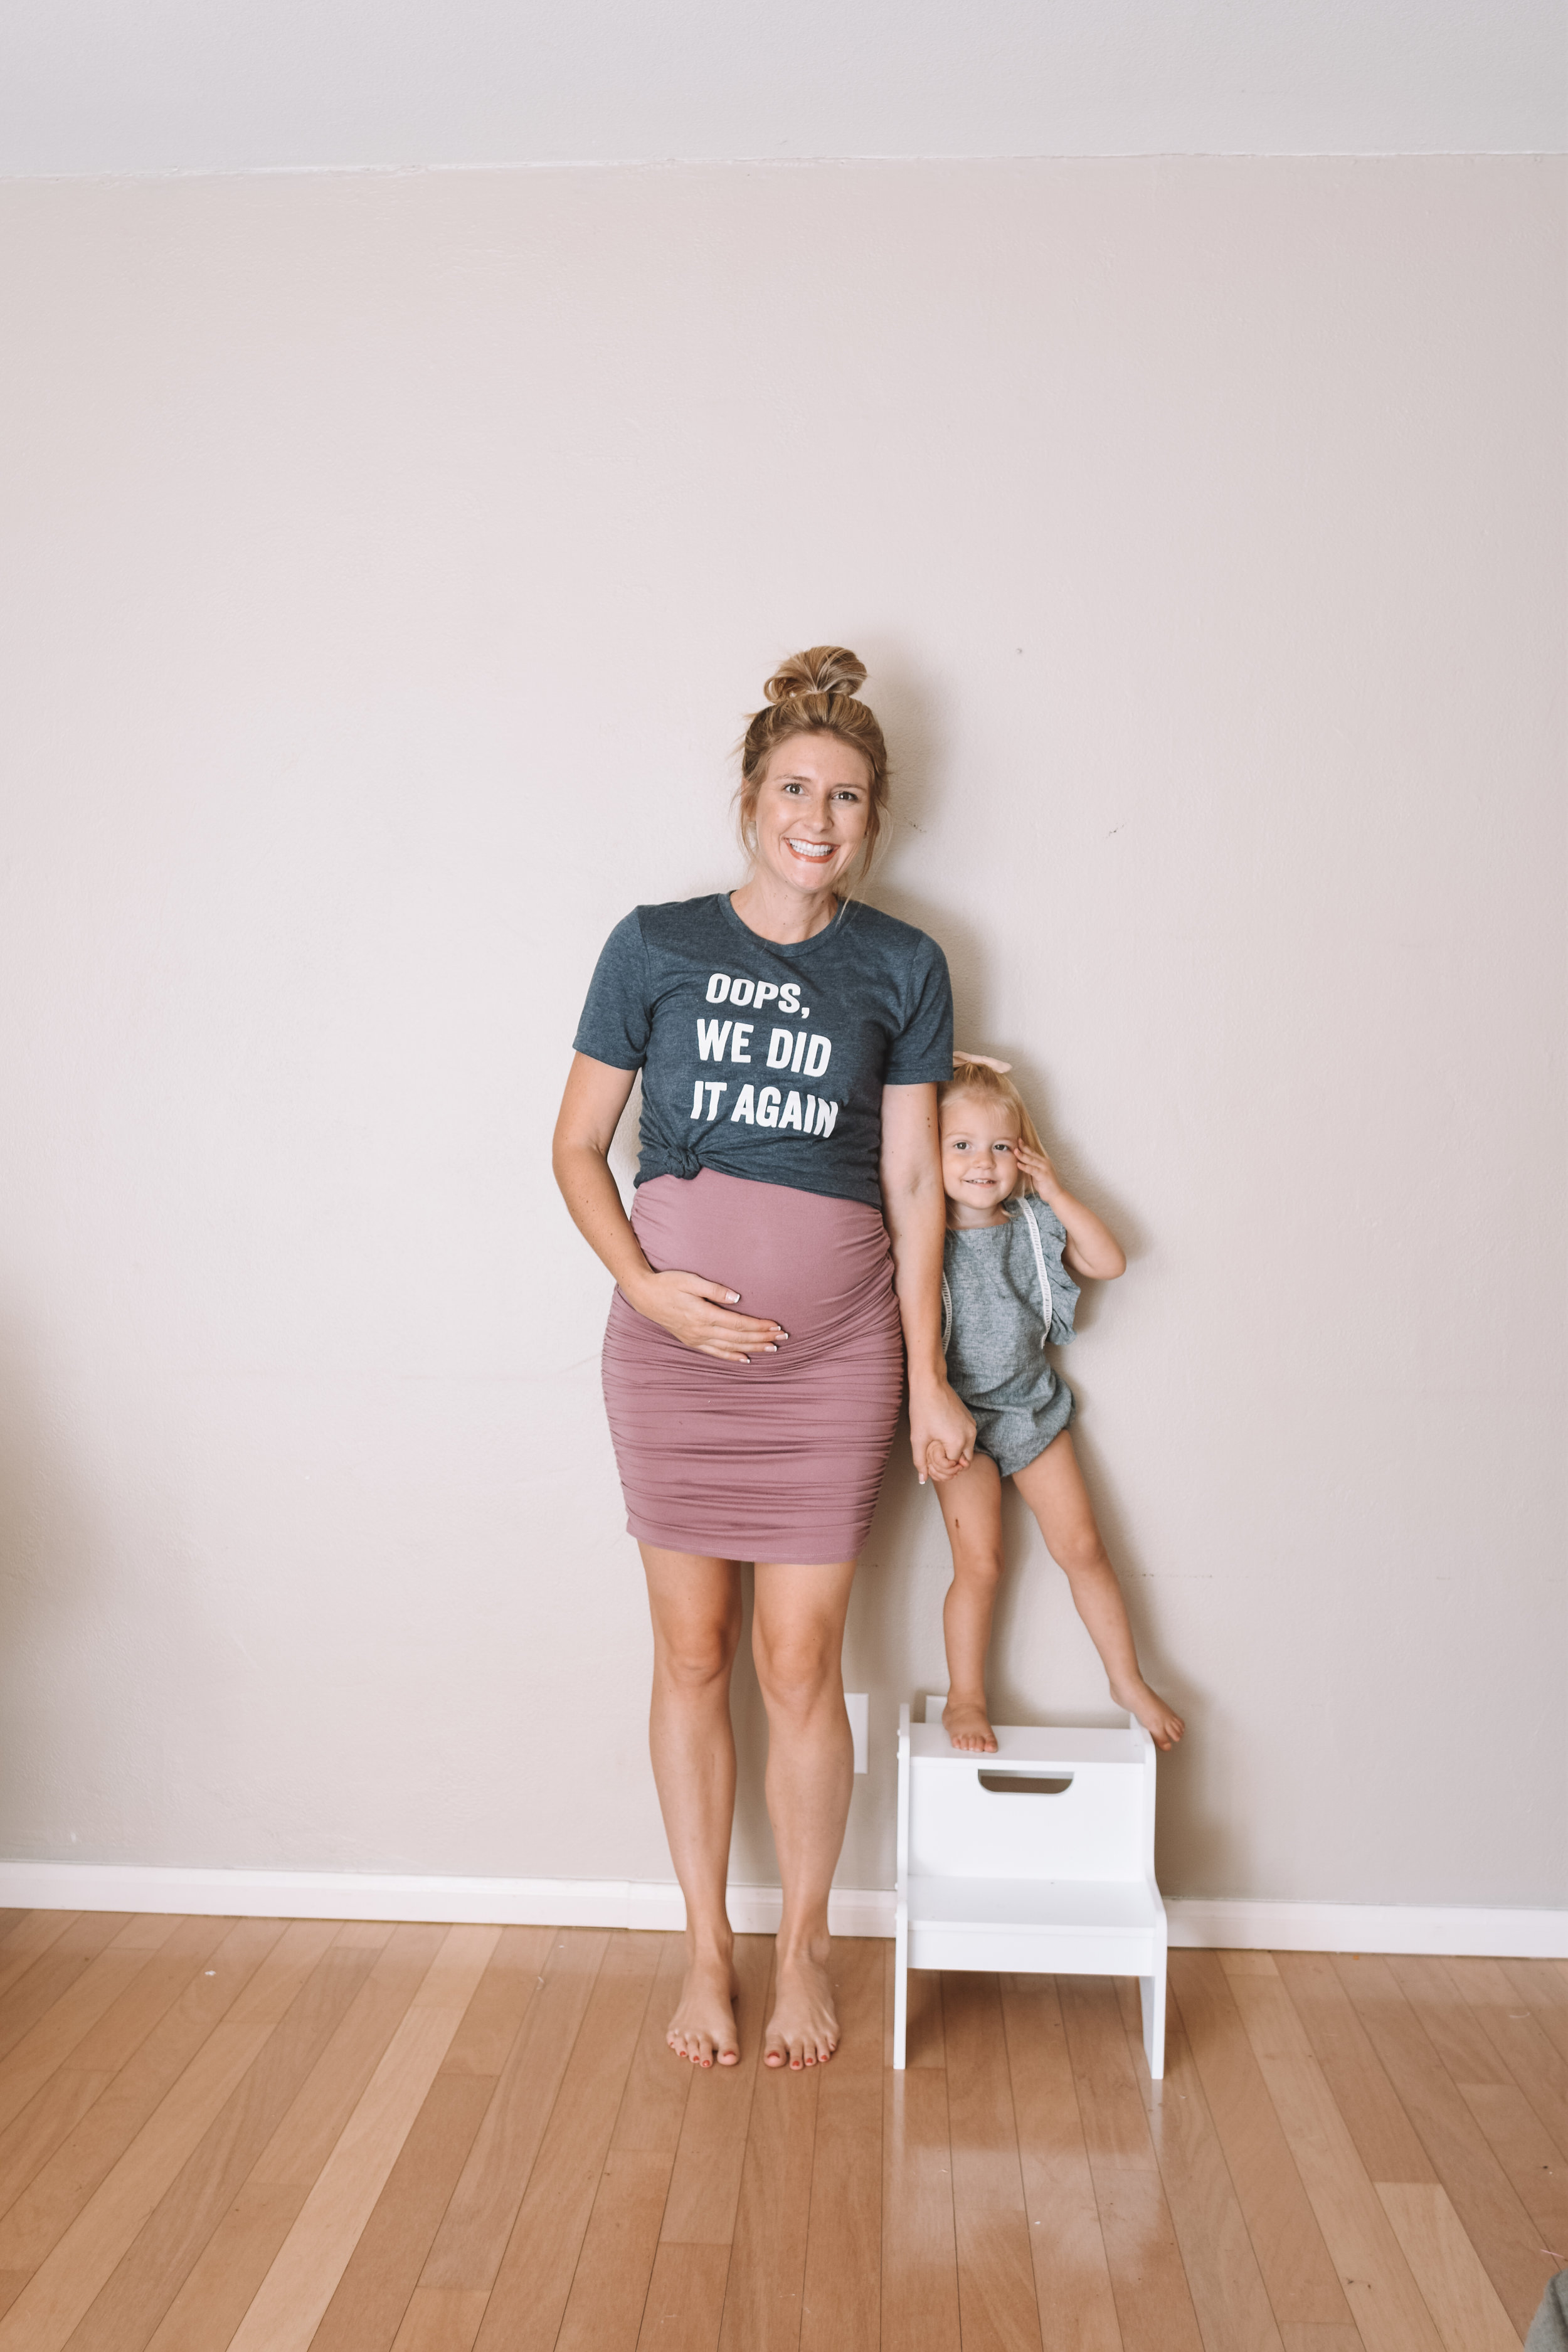 Pregnant Belly 16 Weeks -- Funny Pregnancy Shirts -- The Overwhelmed Mommy Blogger